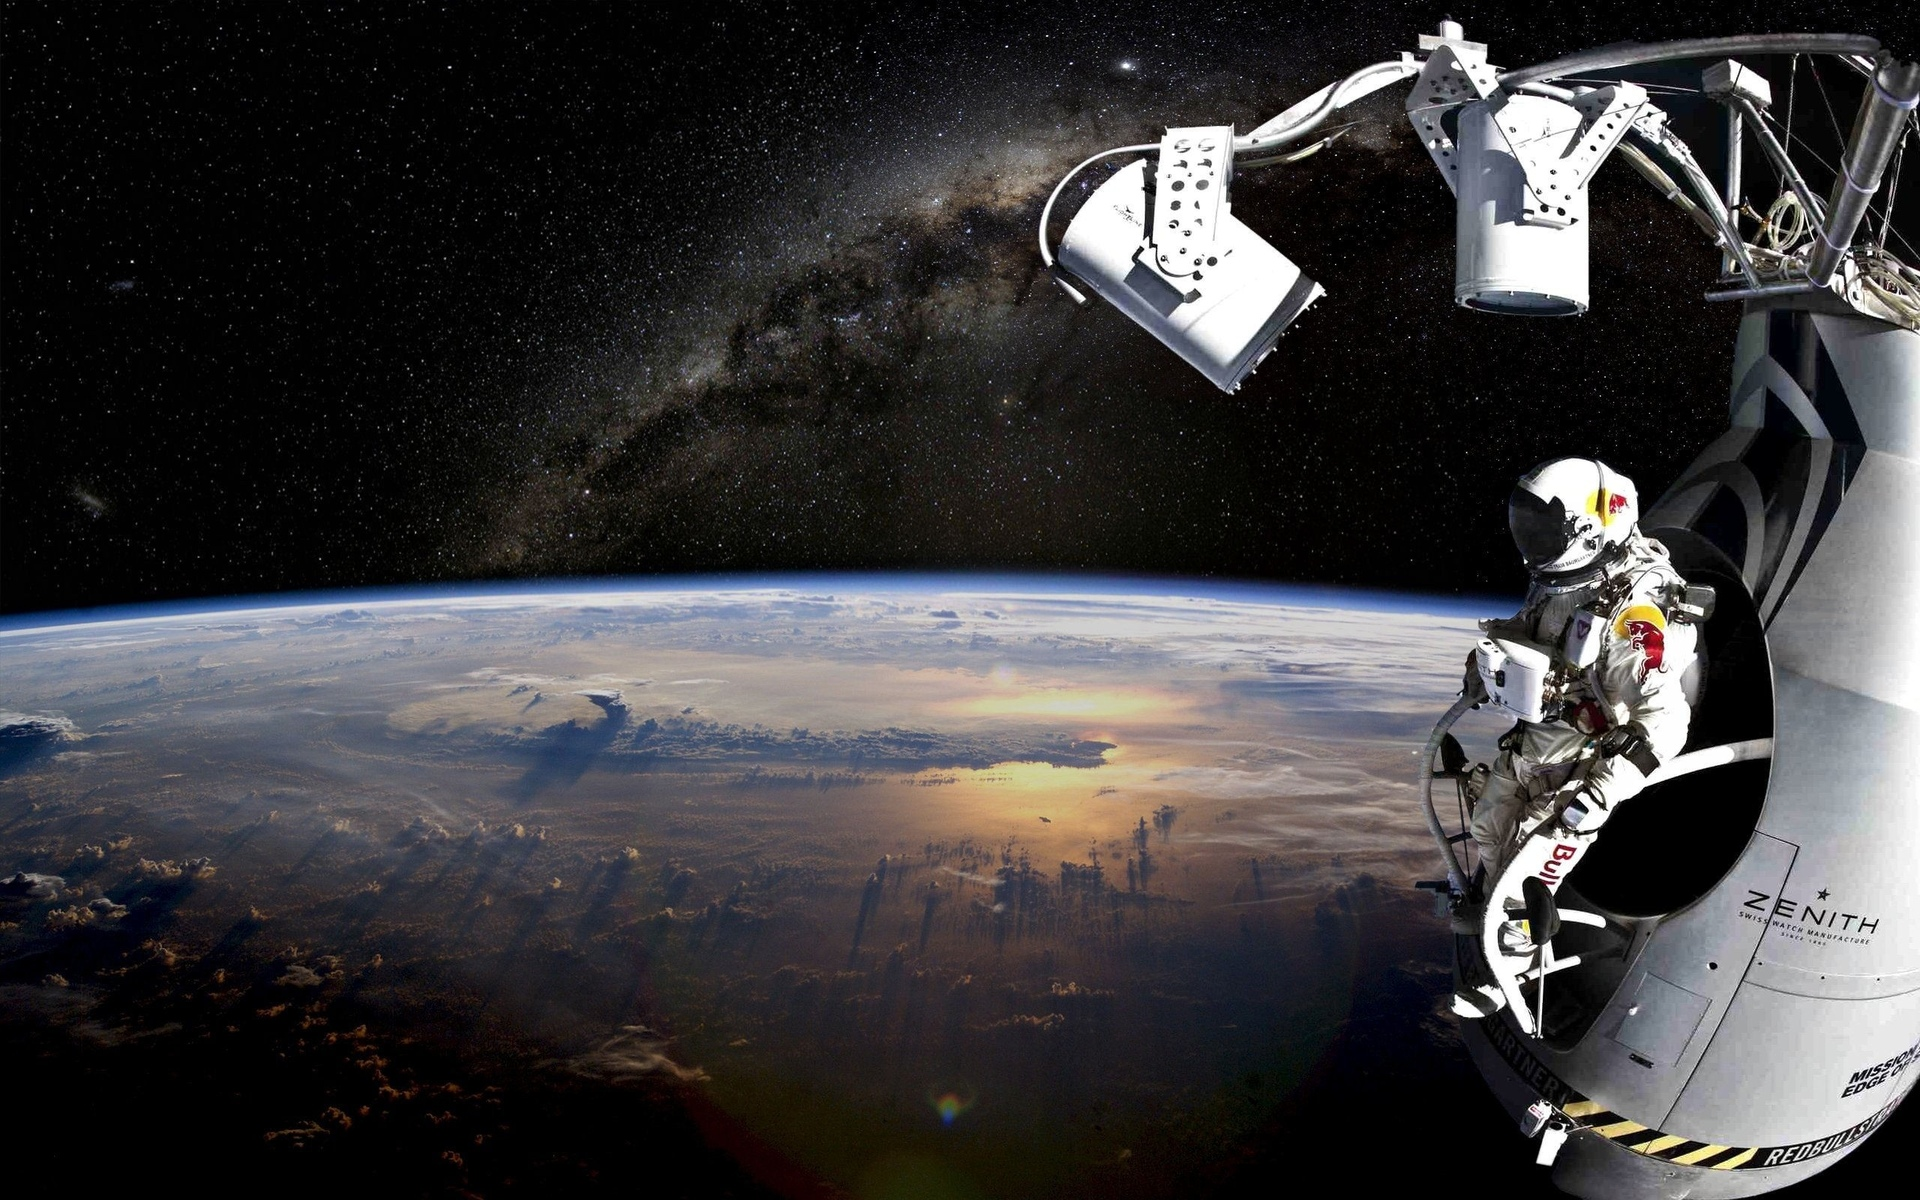 Astronauts Art Wallpaper - Pics about space